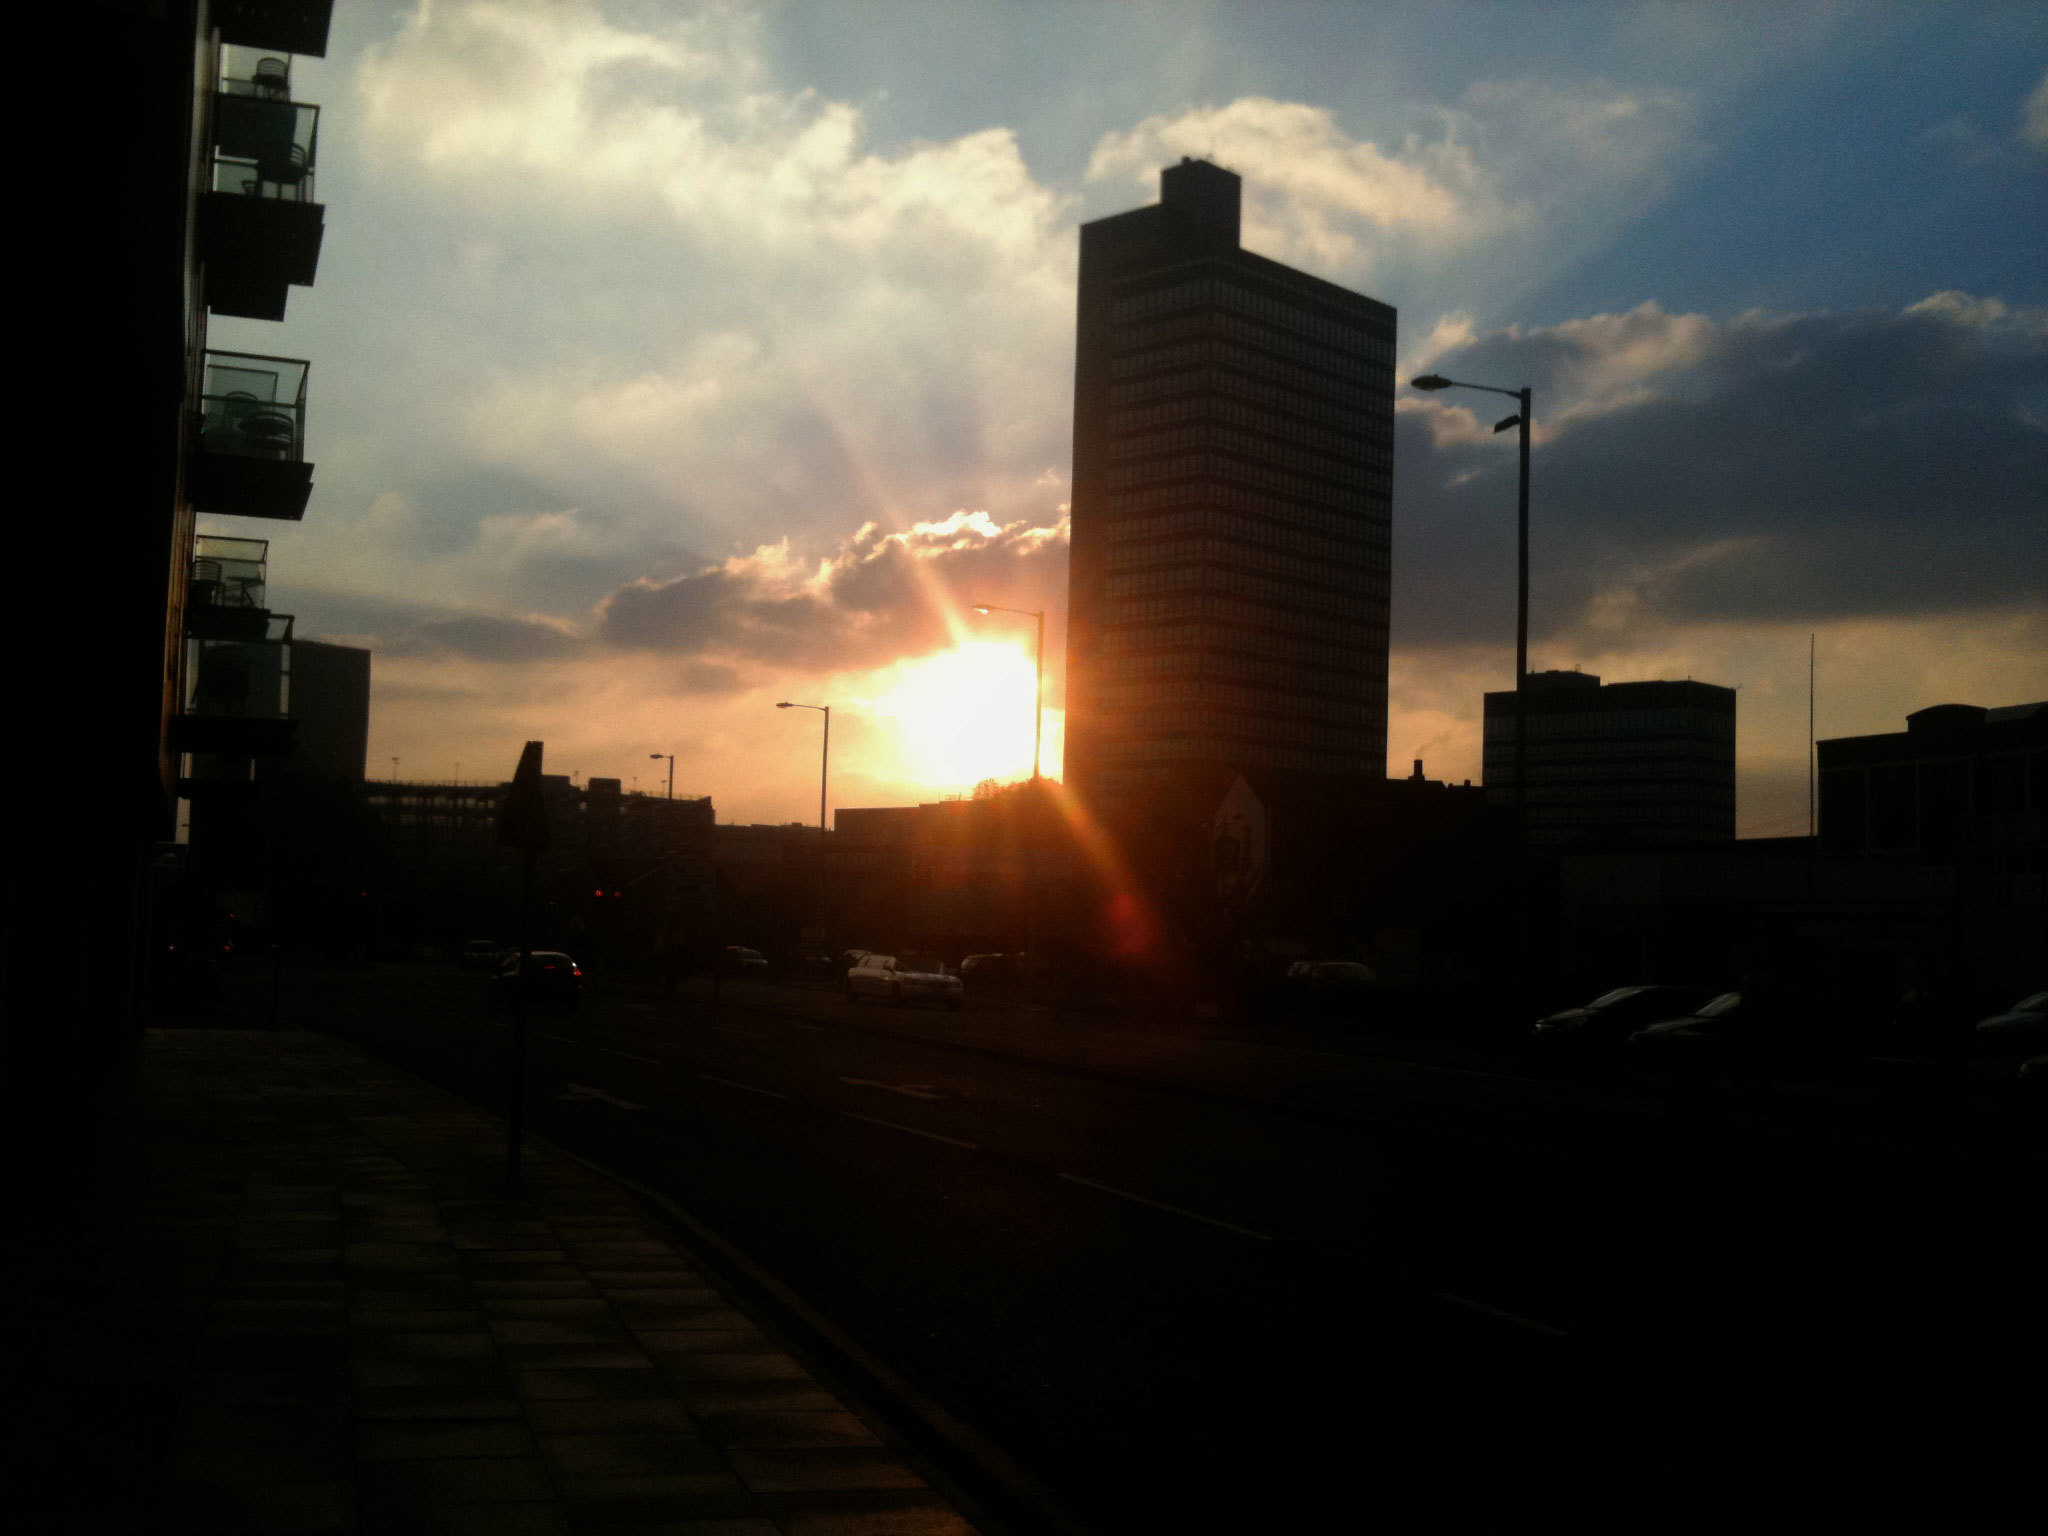 Photo of the Manchester skyline in Shudehill at sunset